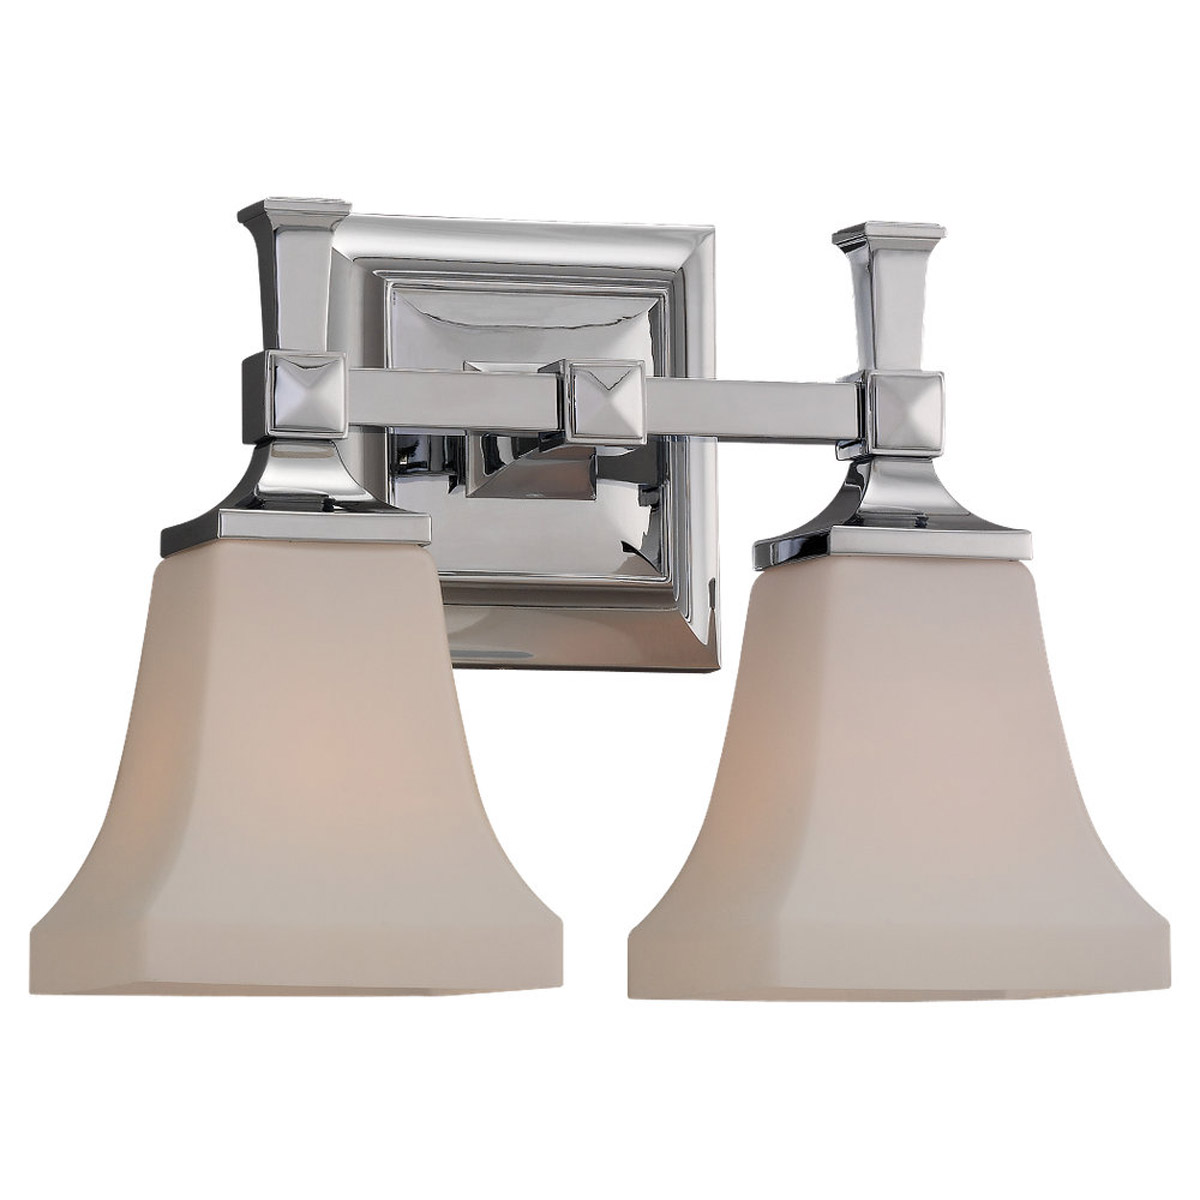 Sea Gull Lighting Melody 2 Light Bath Vanity in Chrome 44706-05 photo